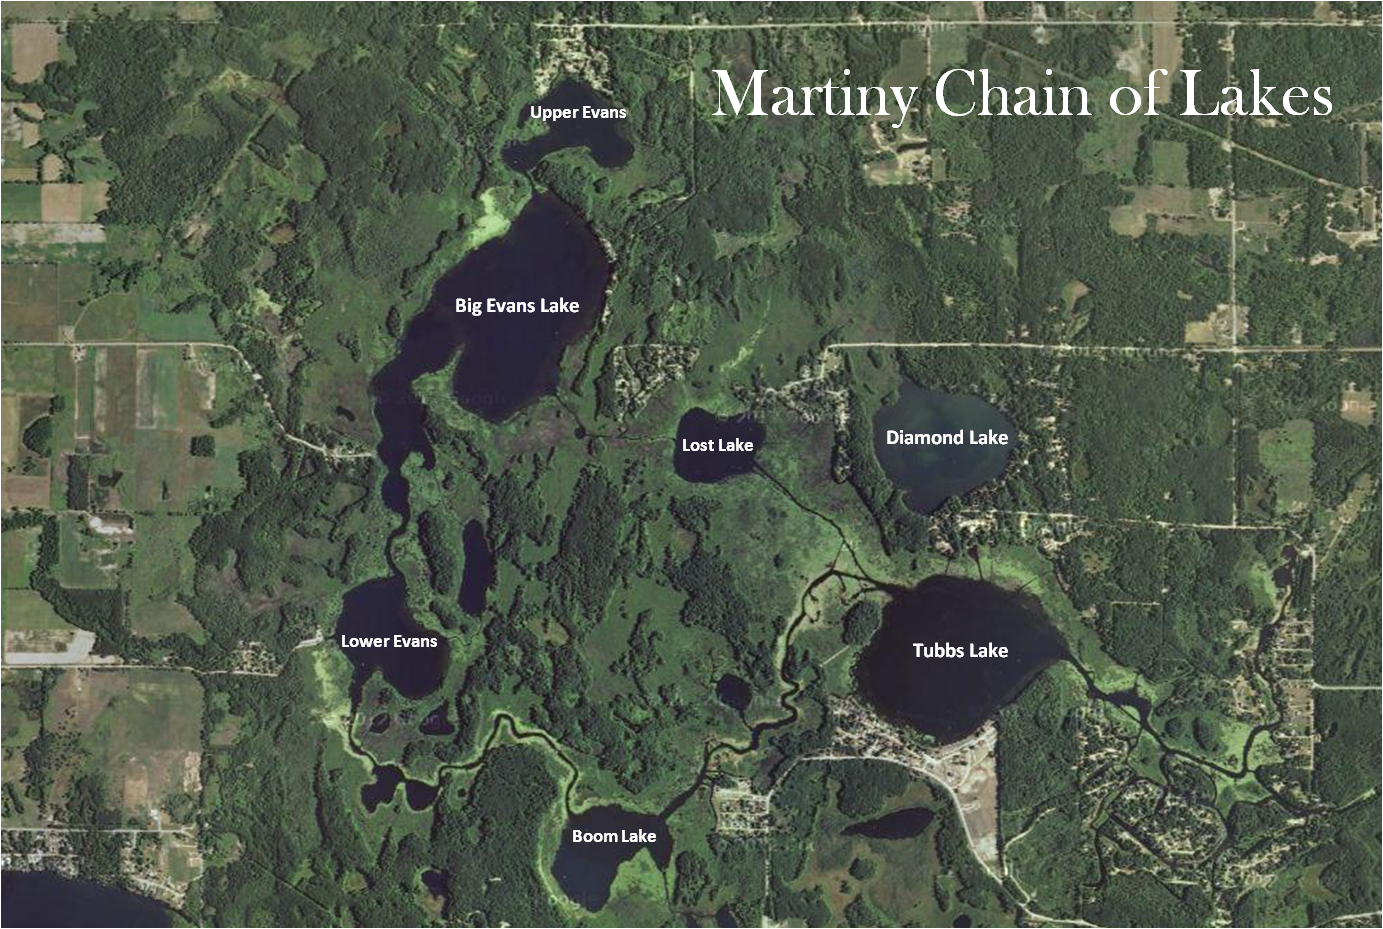 Mecosta Michigan Map.Martiny Chain Of Lakes Mi Real Estate Coldwell Banker Lakes Realty